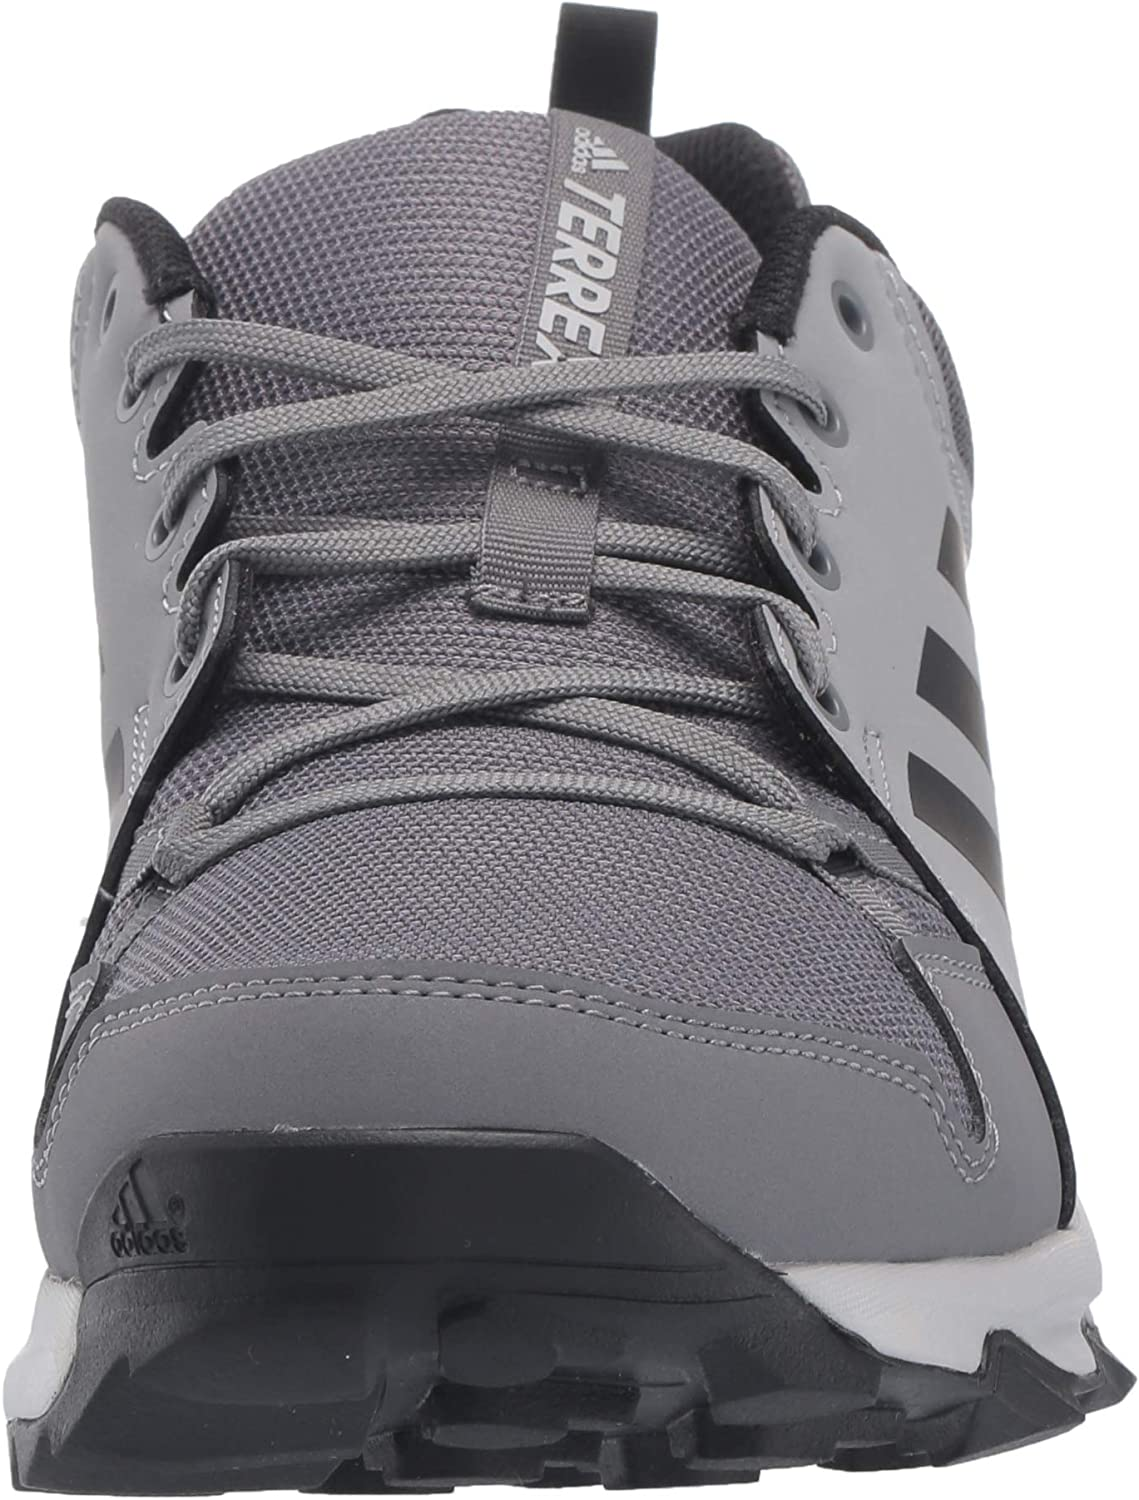 adidas outdoor Men s Terrex Tracerocker Trail Running Shoe, Grey Four Black Grey Three, 11.5 D US